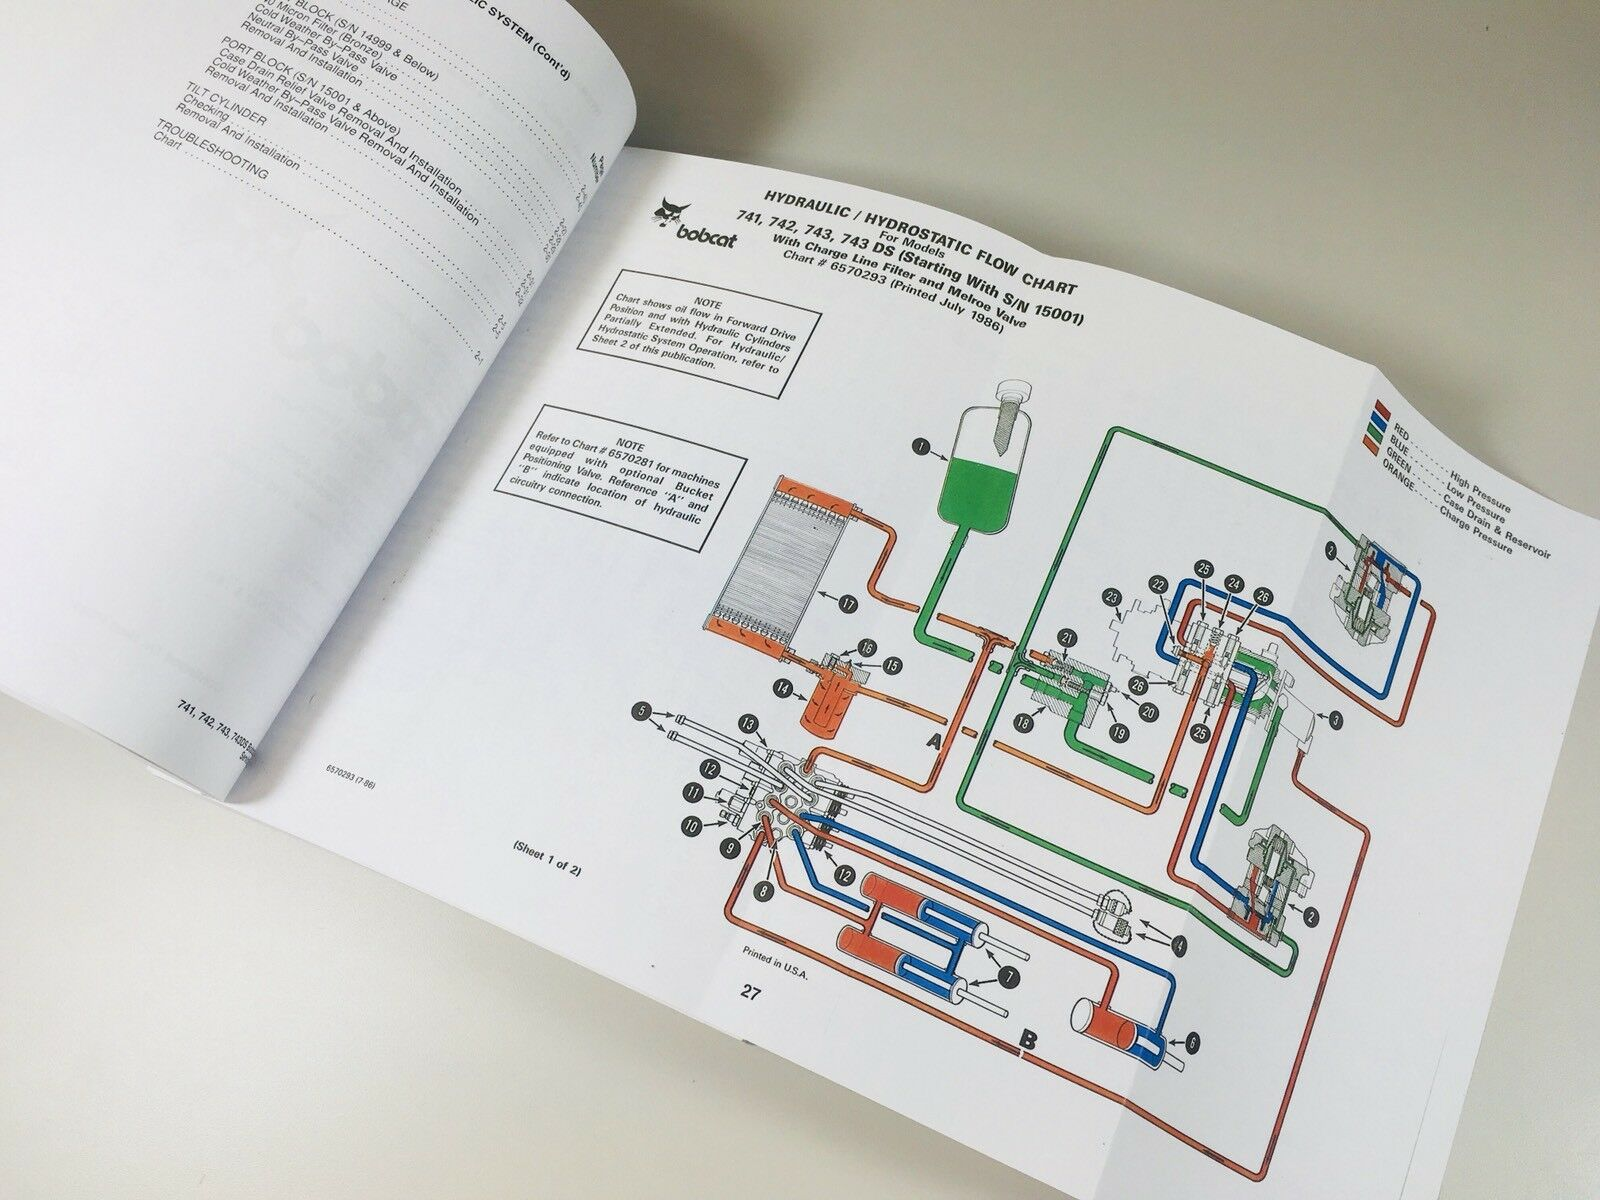 hight resolution of gauge wiring diagram bobcat 743 basic guide wiring diagram u2022 bobcat s250 parts diagram gauge